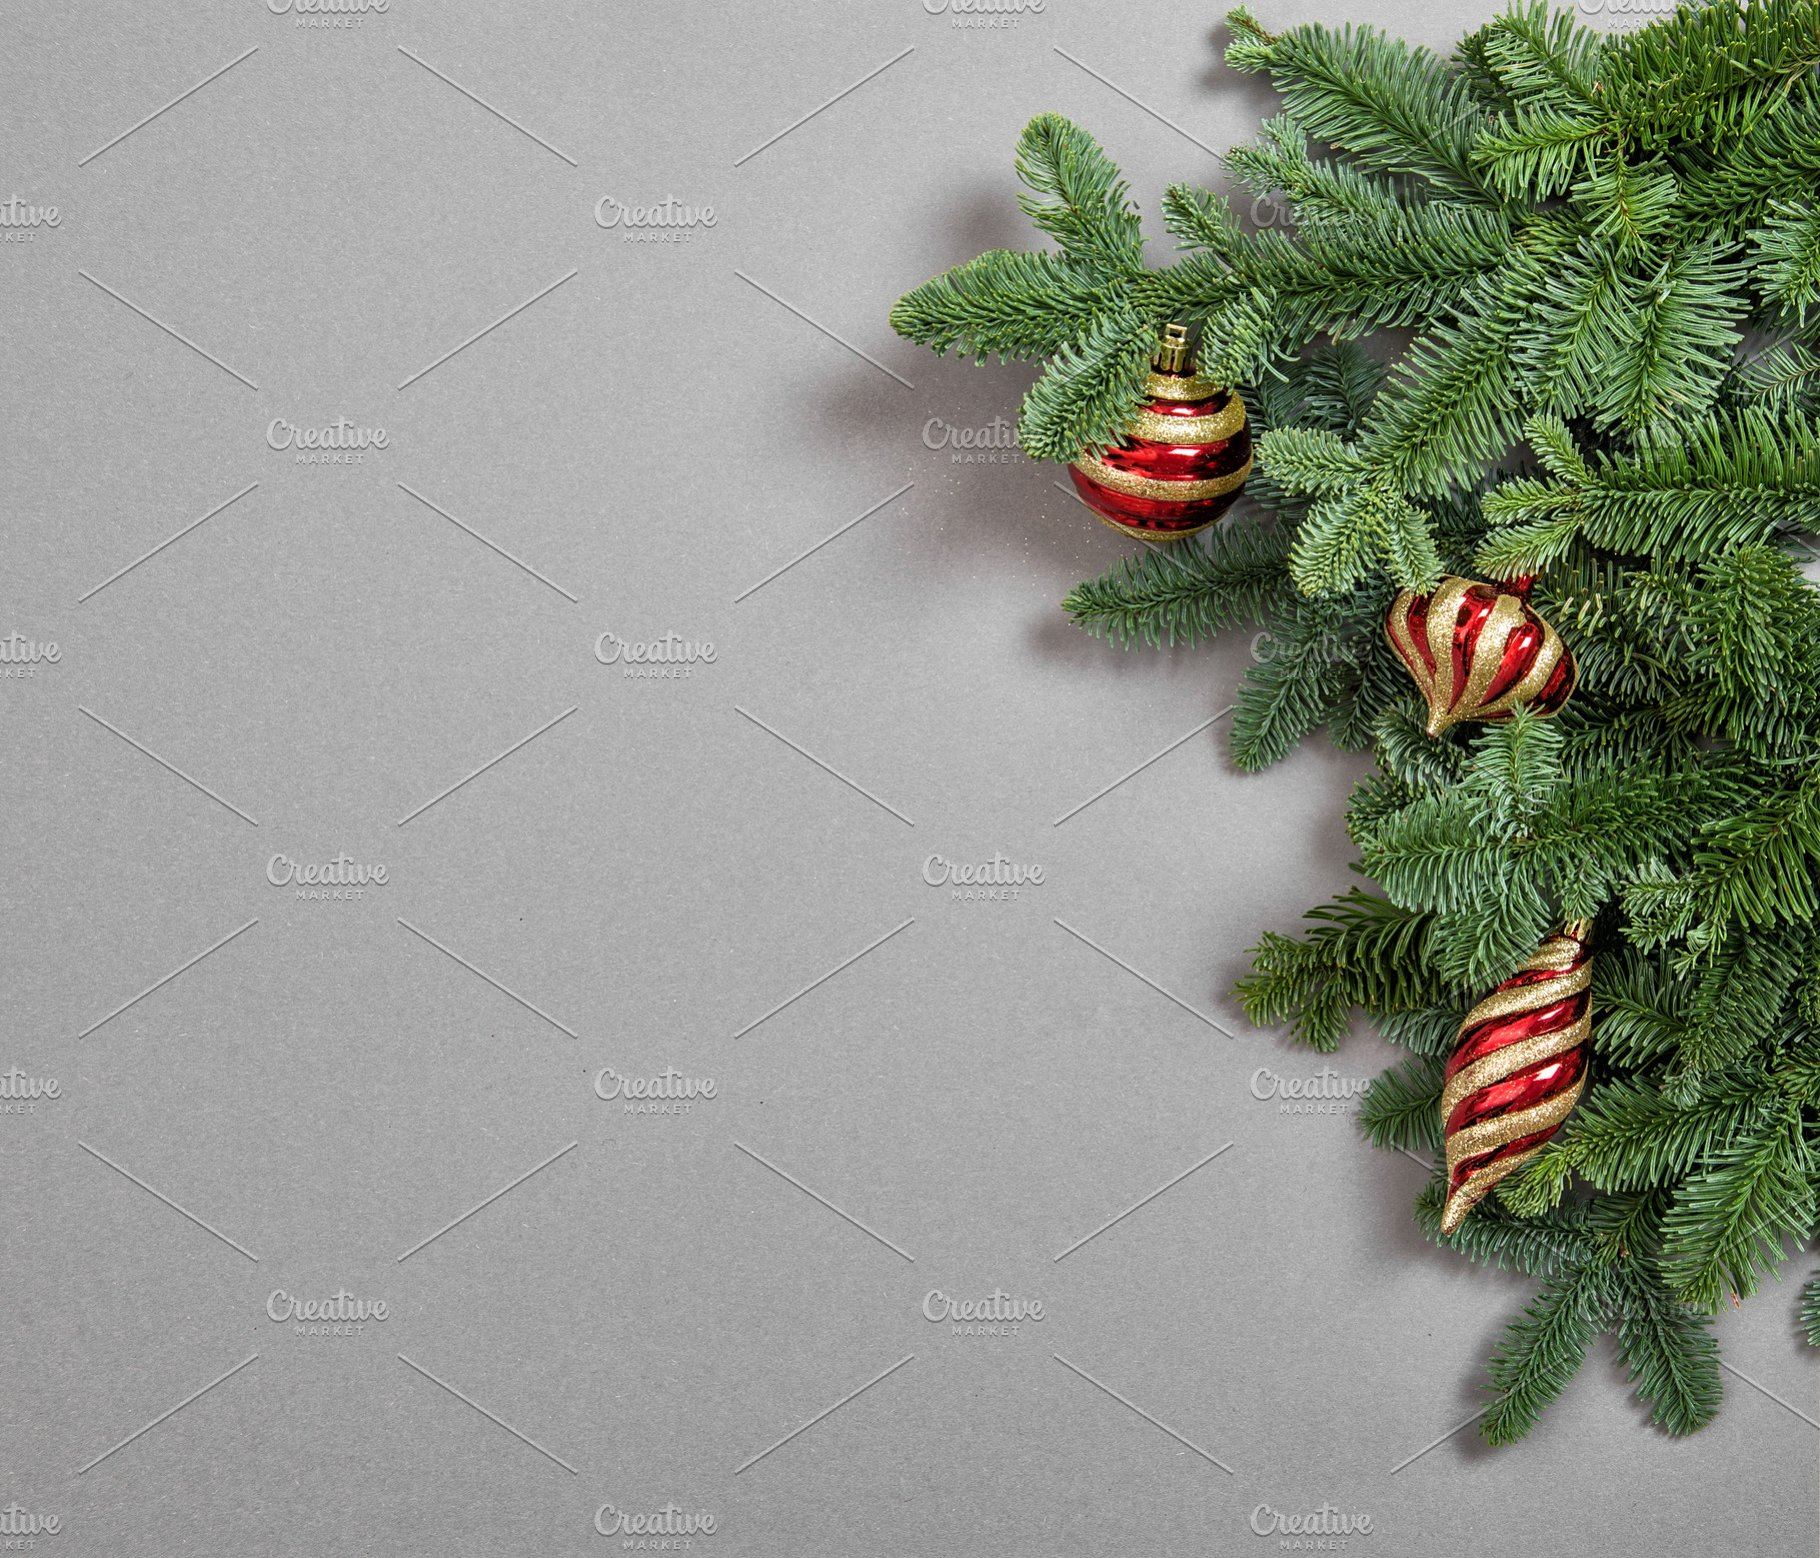 Christmas Tree Branches Decoration Holiday Photos Creative Market